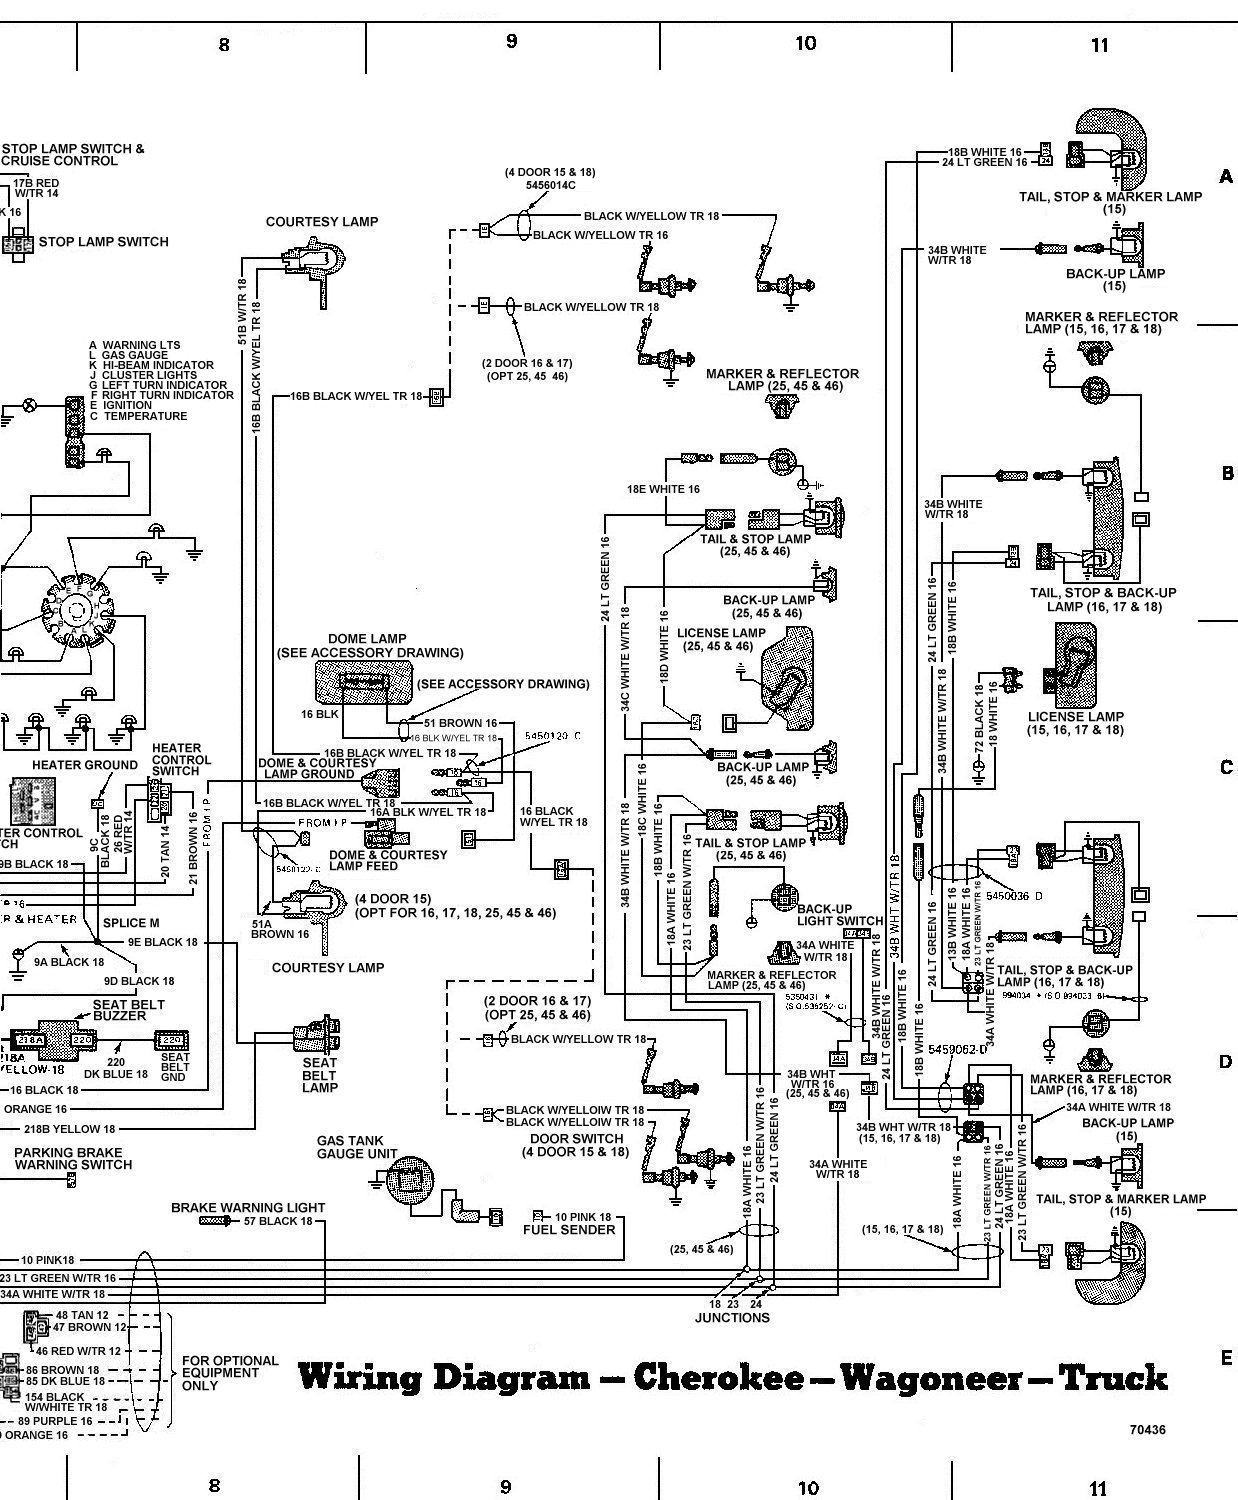 84 cherokee wiring diagram wiring diagrams schematics tom oljeep collins fsj wiring page 2000 jeep cherokee wiring diagram 1998 jeep grand cheapraybanclubmaster